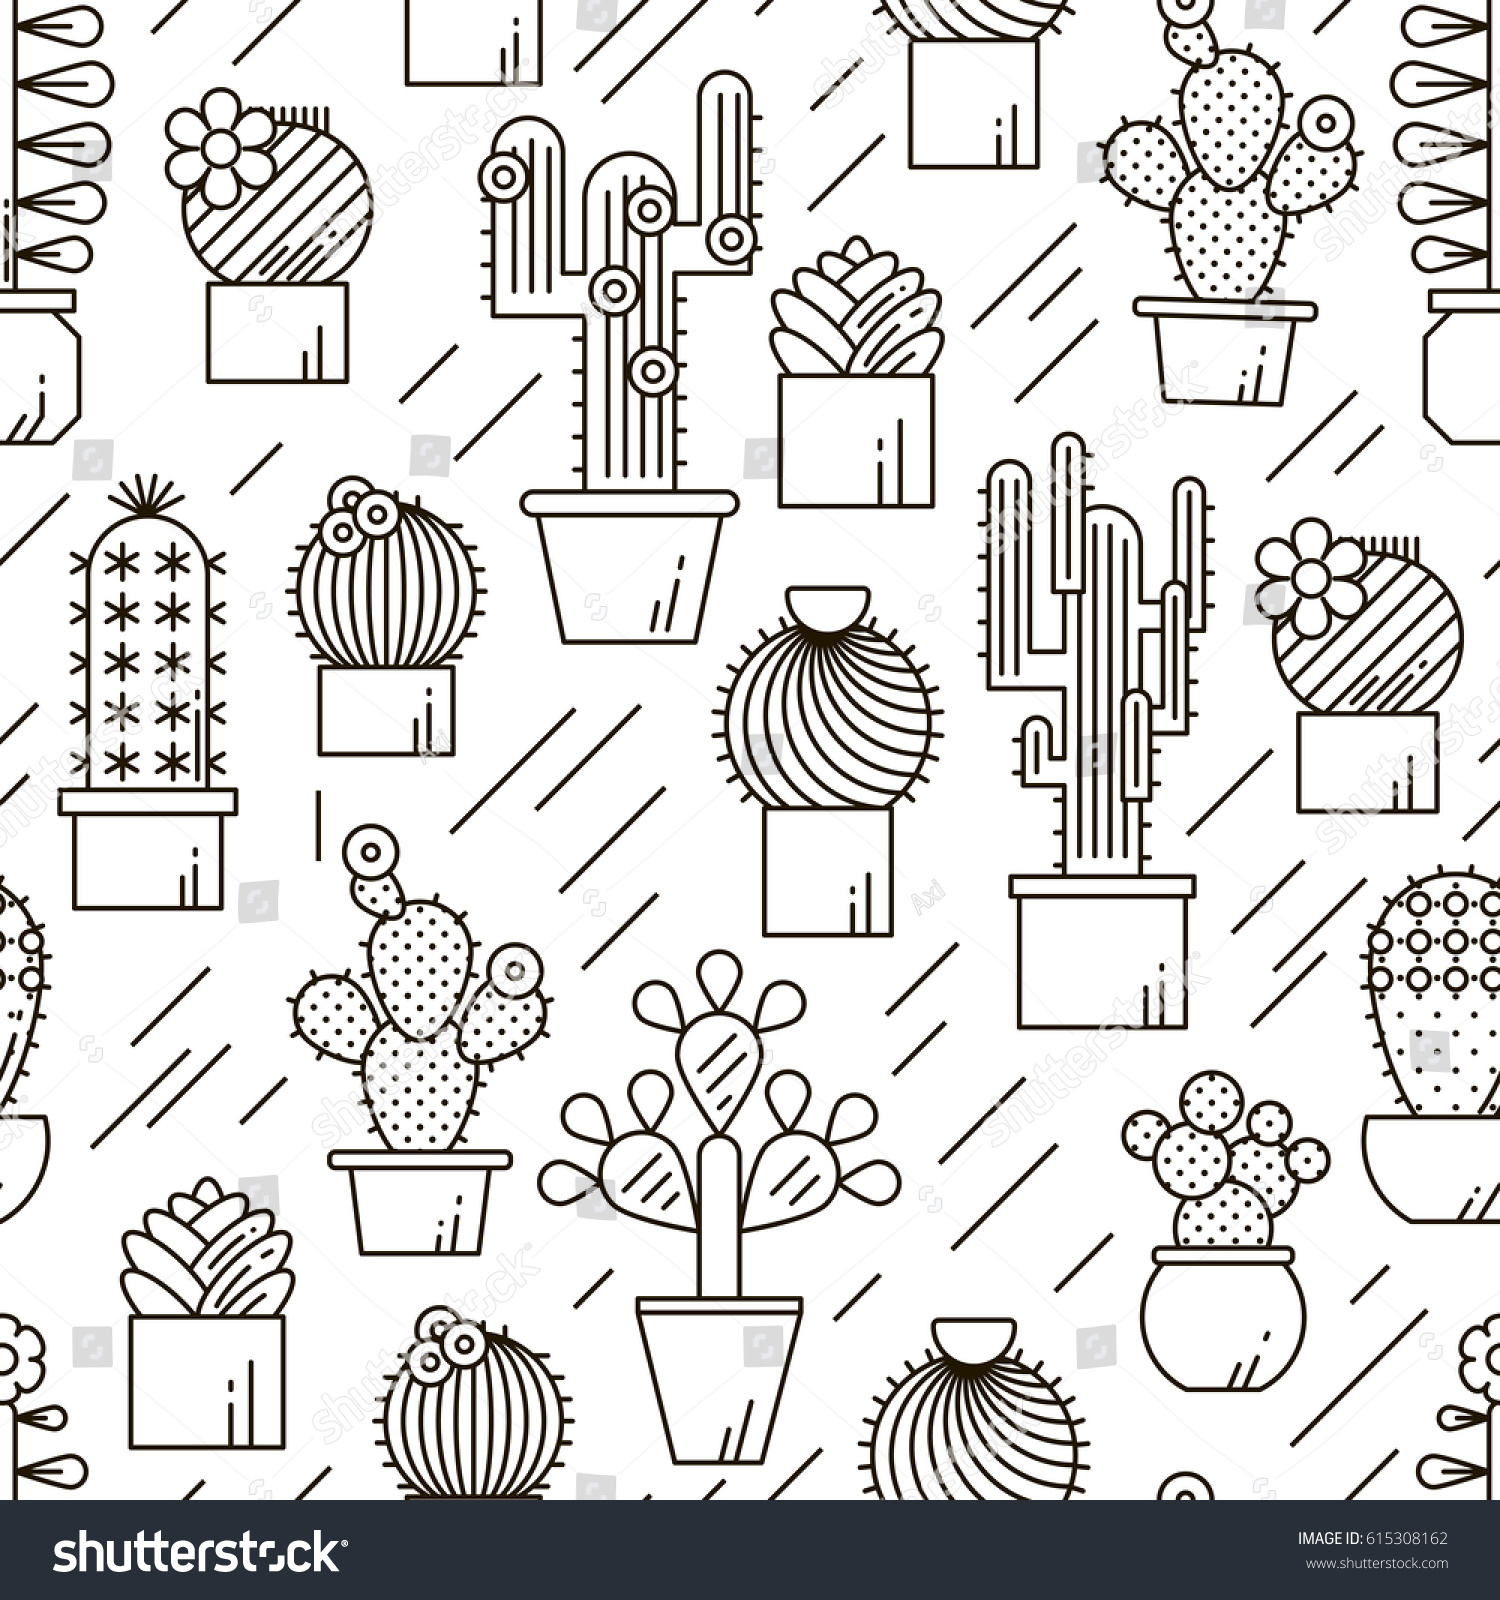 Cactus Succulents Vector Line Seamless Pattern Stock Vector HD ...